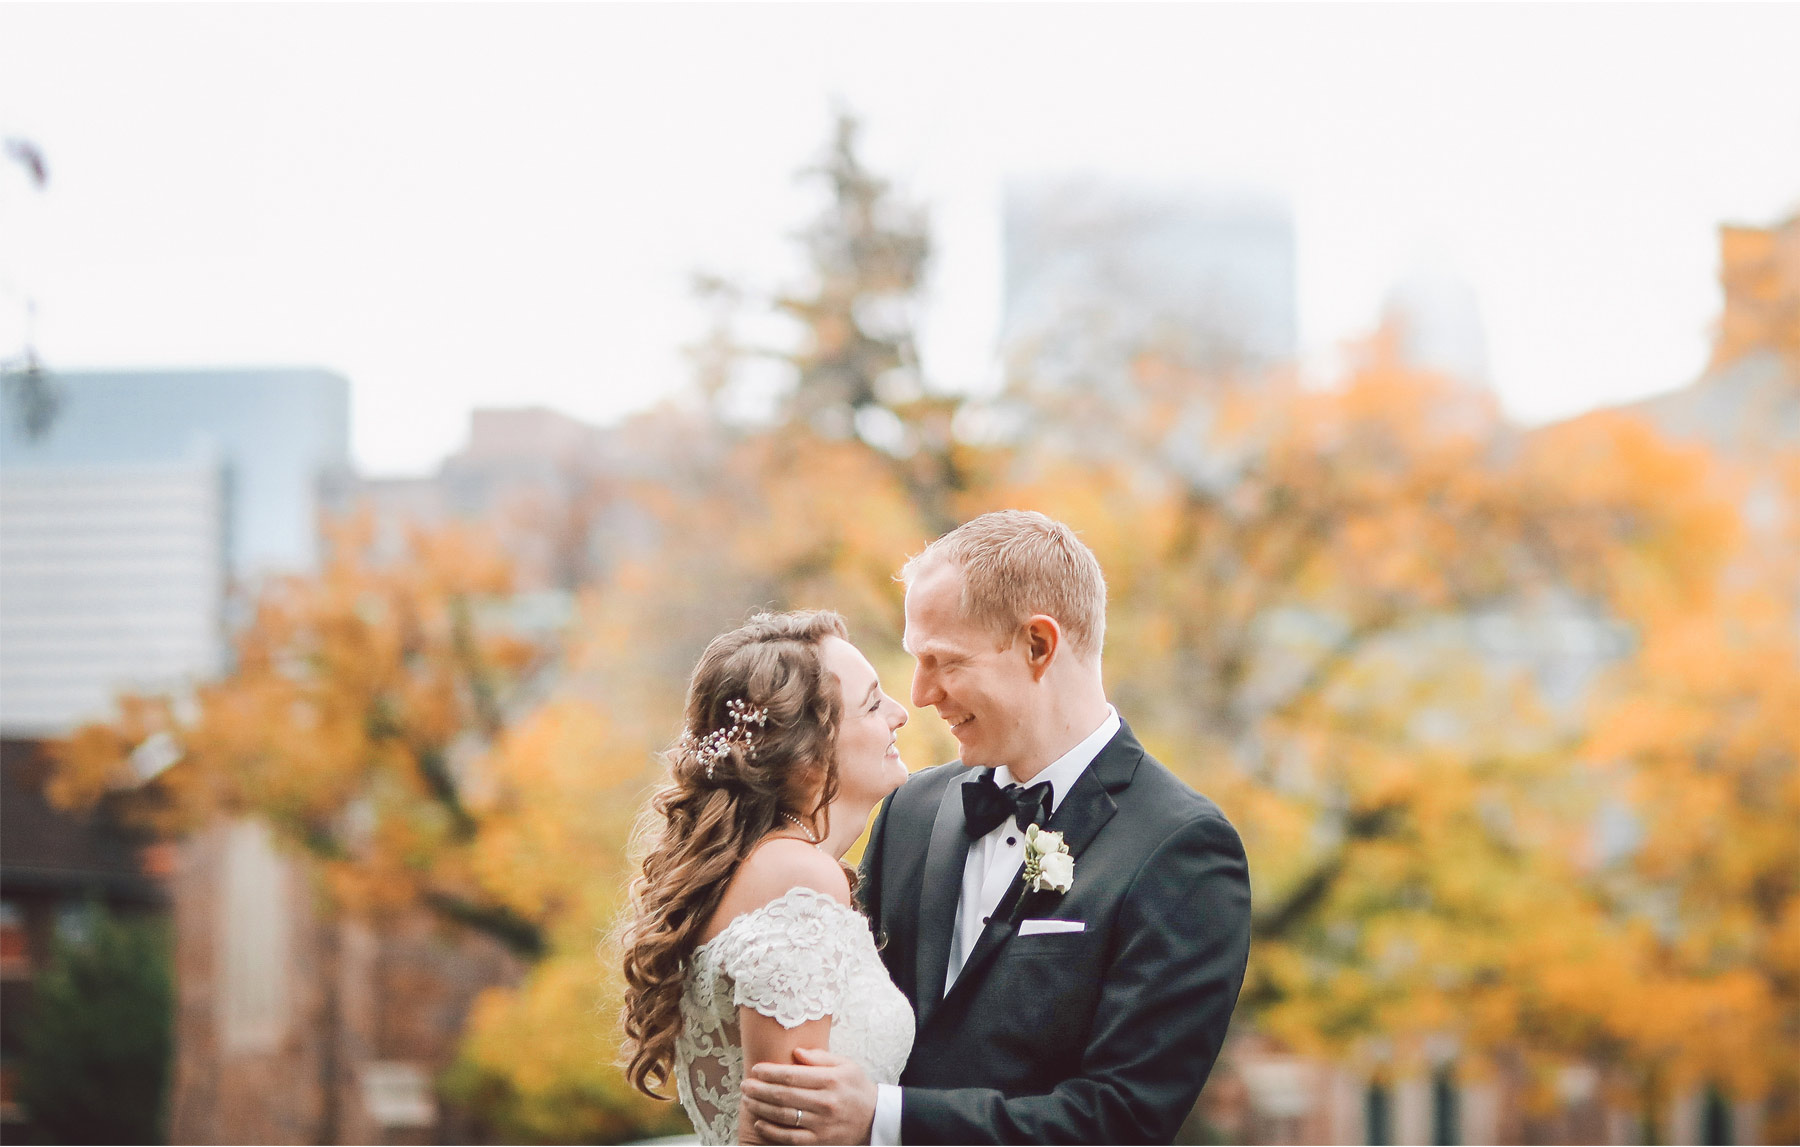 10-Minneapolis-Minnesota-Wedding-Photography-by-Vick-Photography-Semple-Mansion-Fall-Autumn-Danielle-and-Chance.jpg